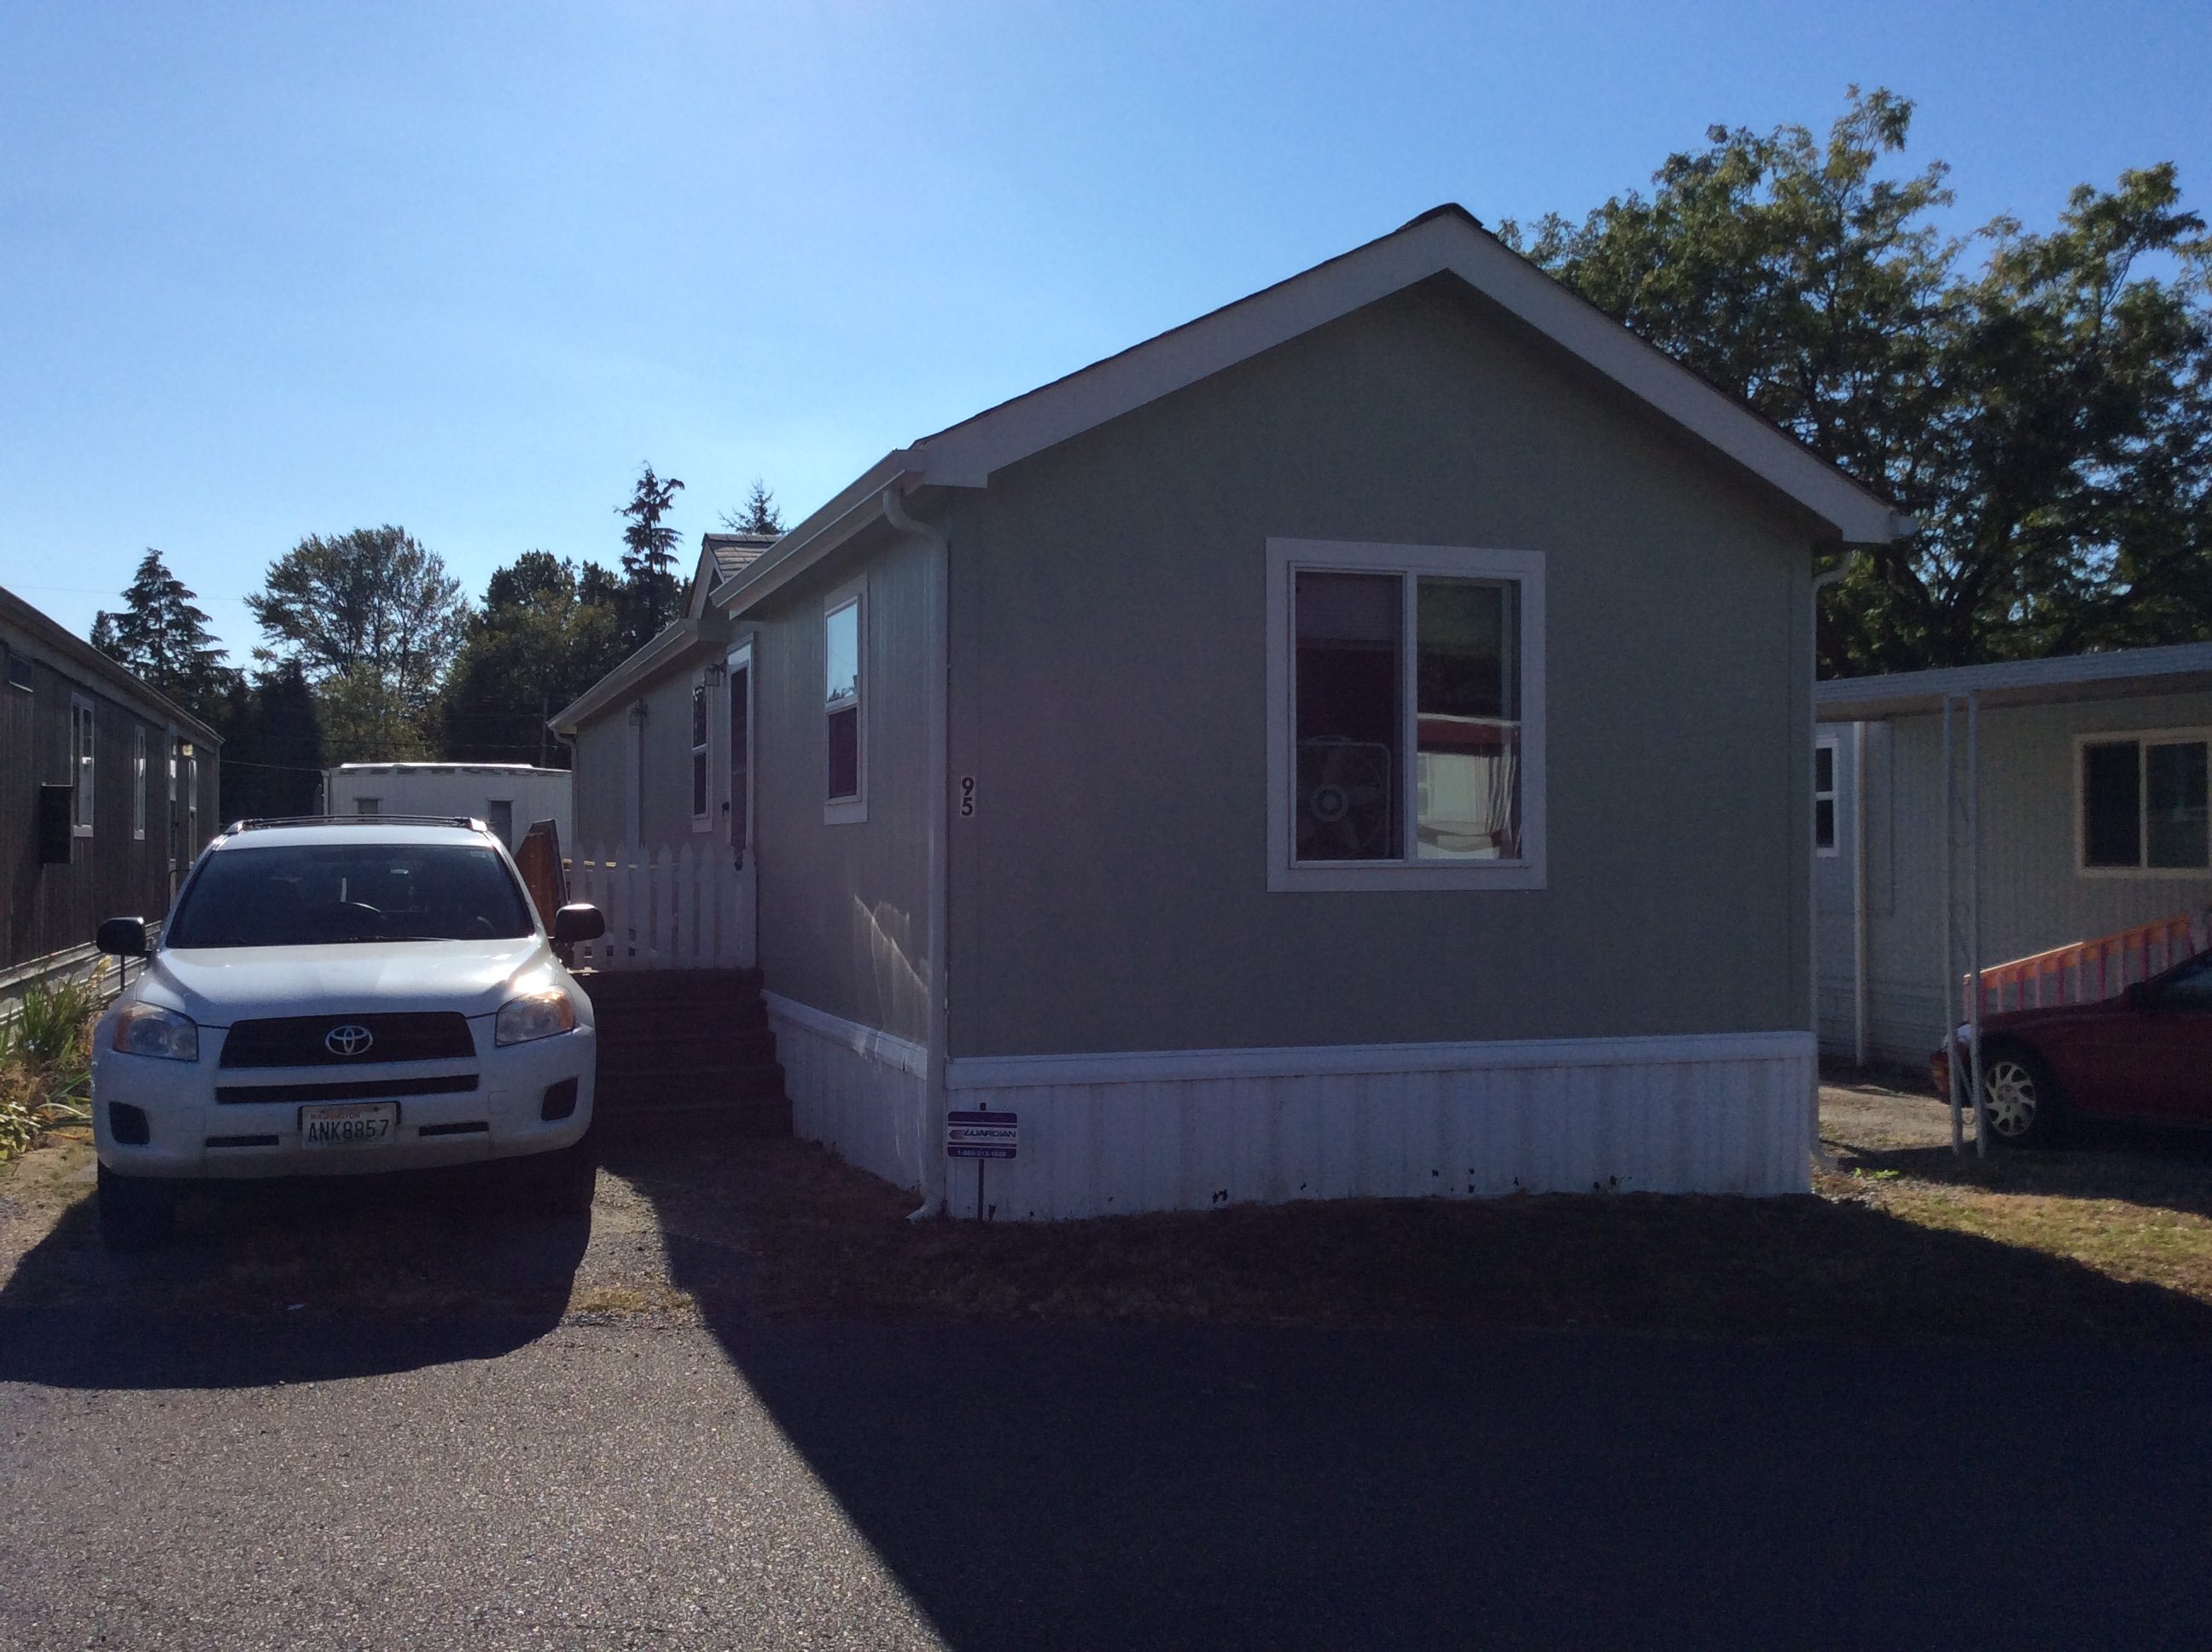 Crestwood Senior Mobile Home Park 1645 S 272nd St Spc 43 Federal Way WA 98003